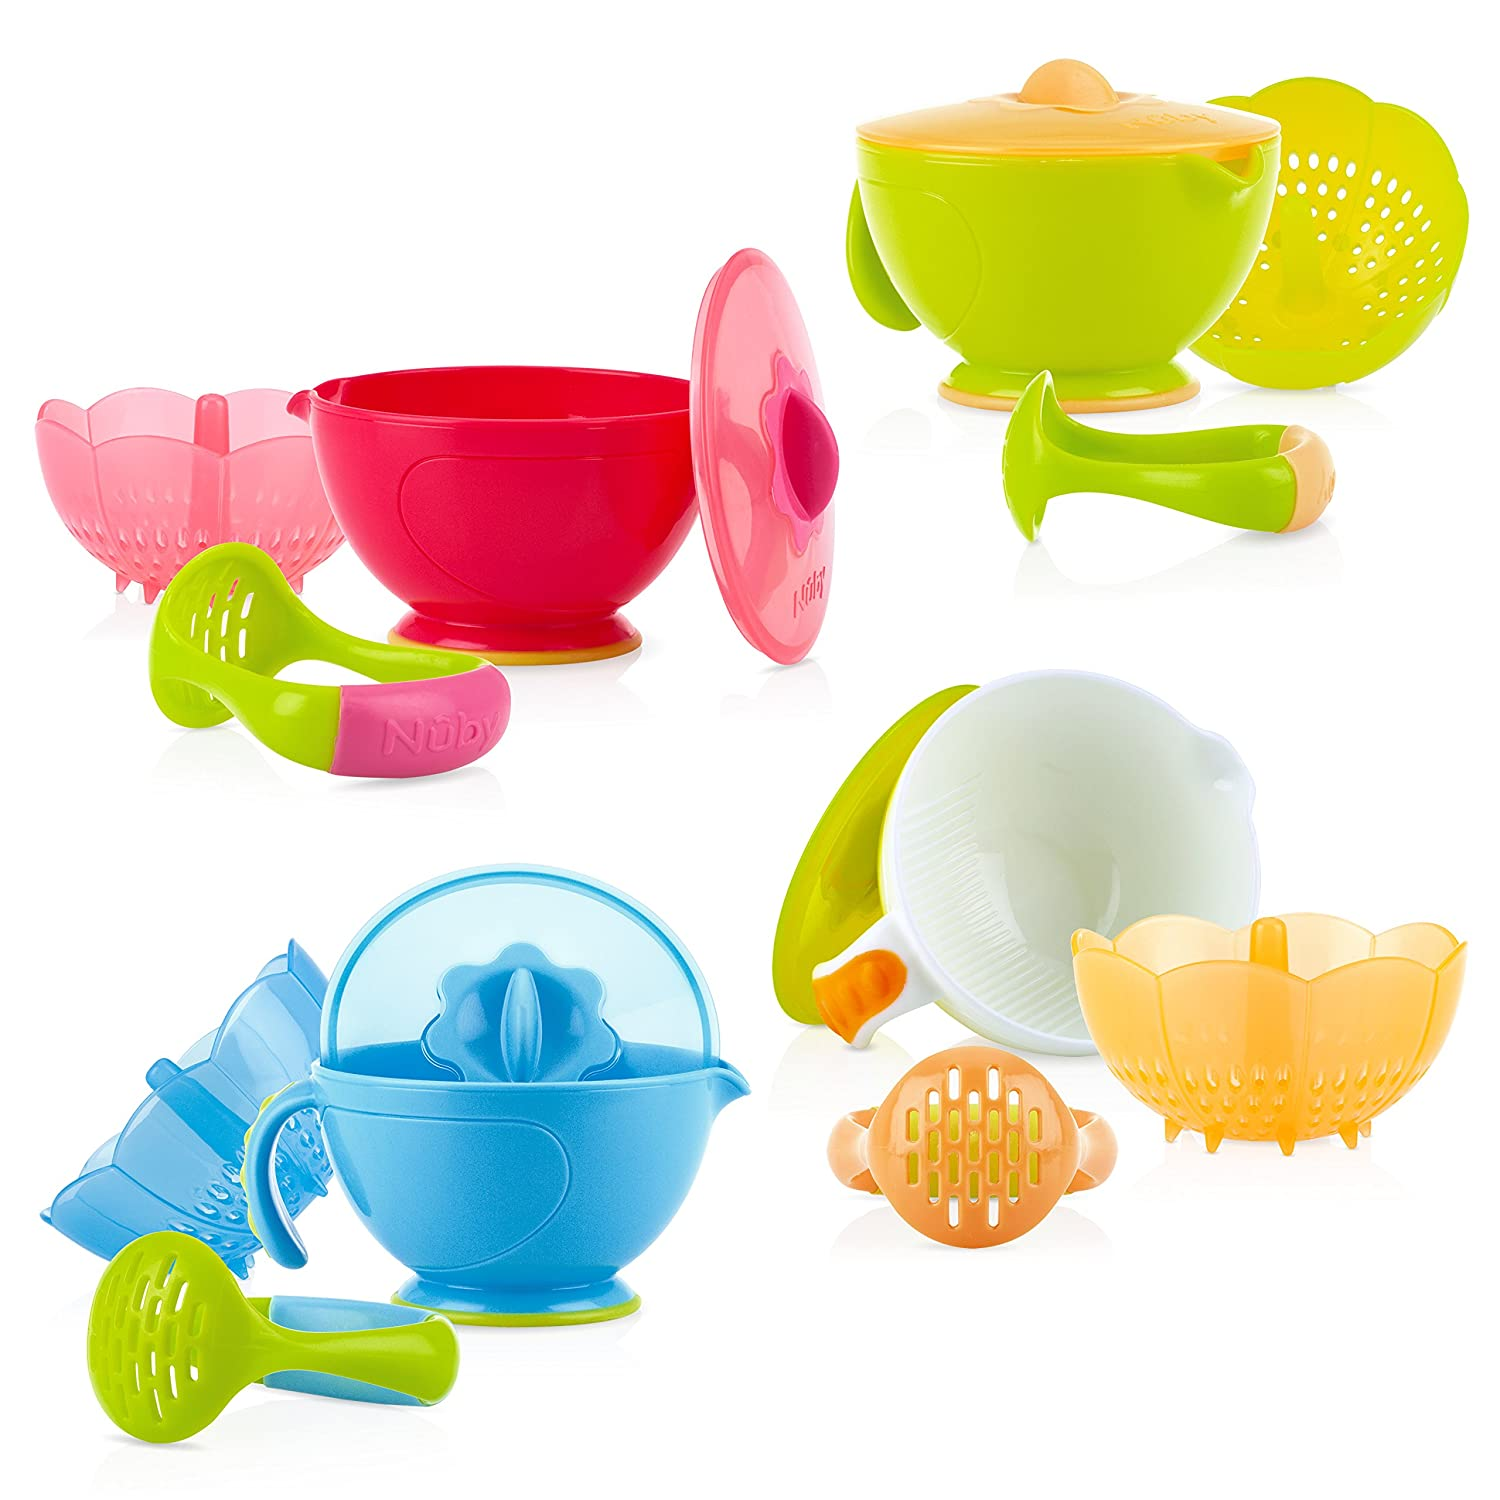 Nuby Garden Fresh Steam N' Mash Baby Food Prep Bowl and Food Masher, Colors May Vary 5449